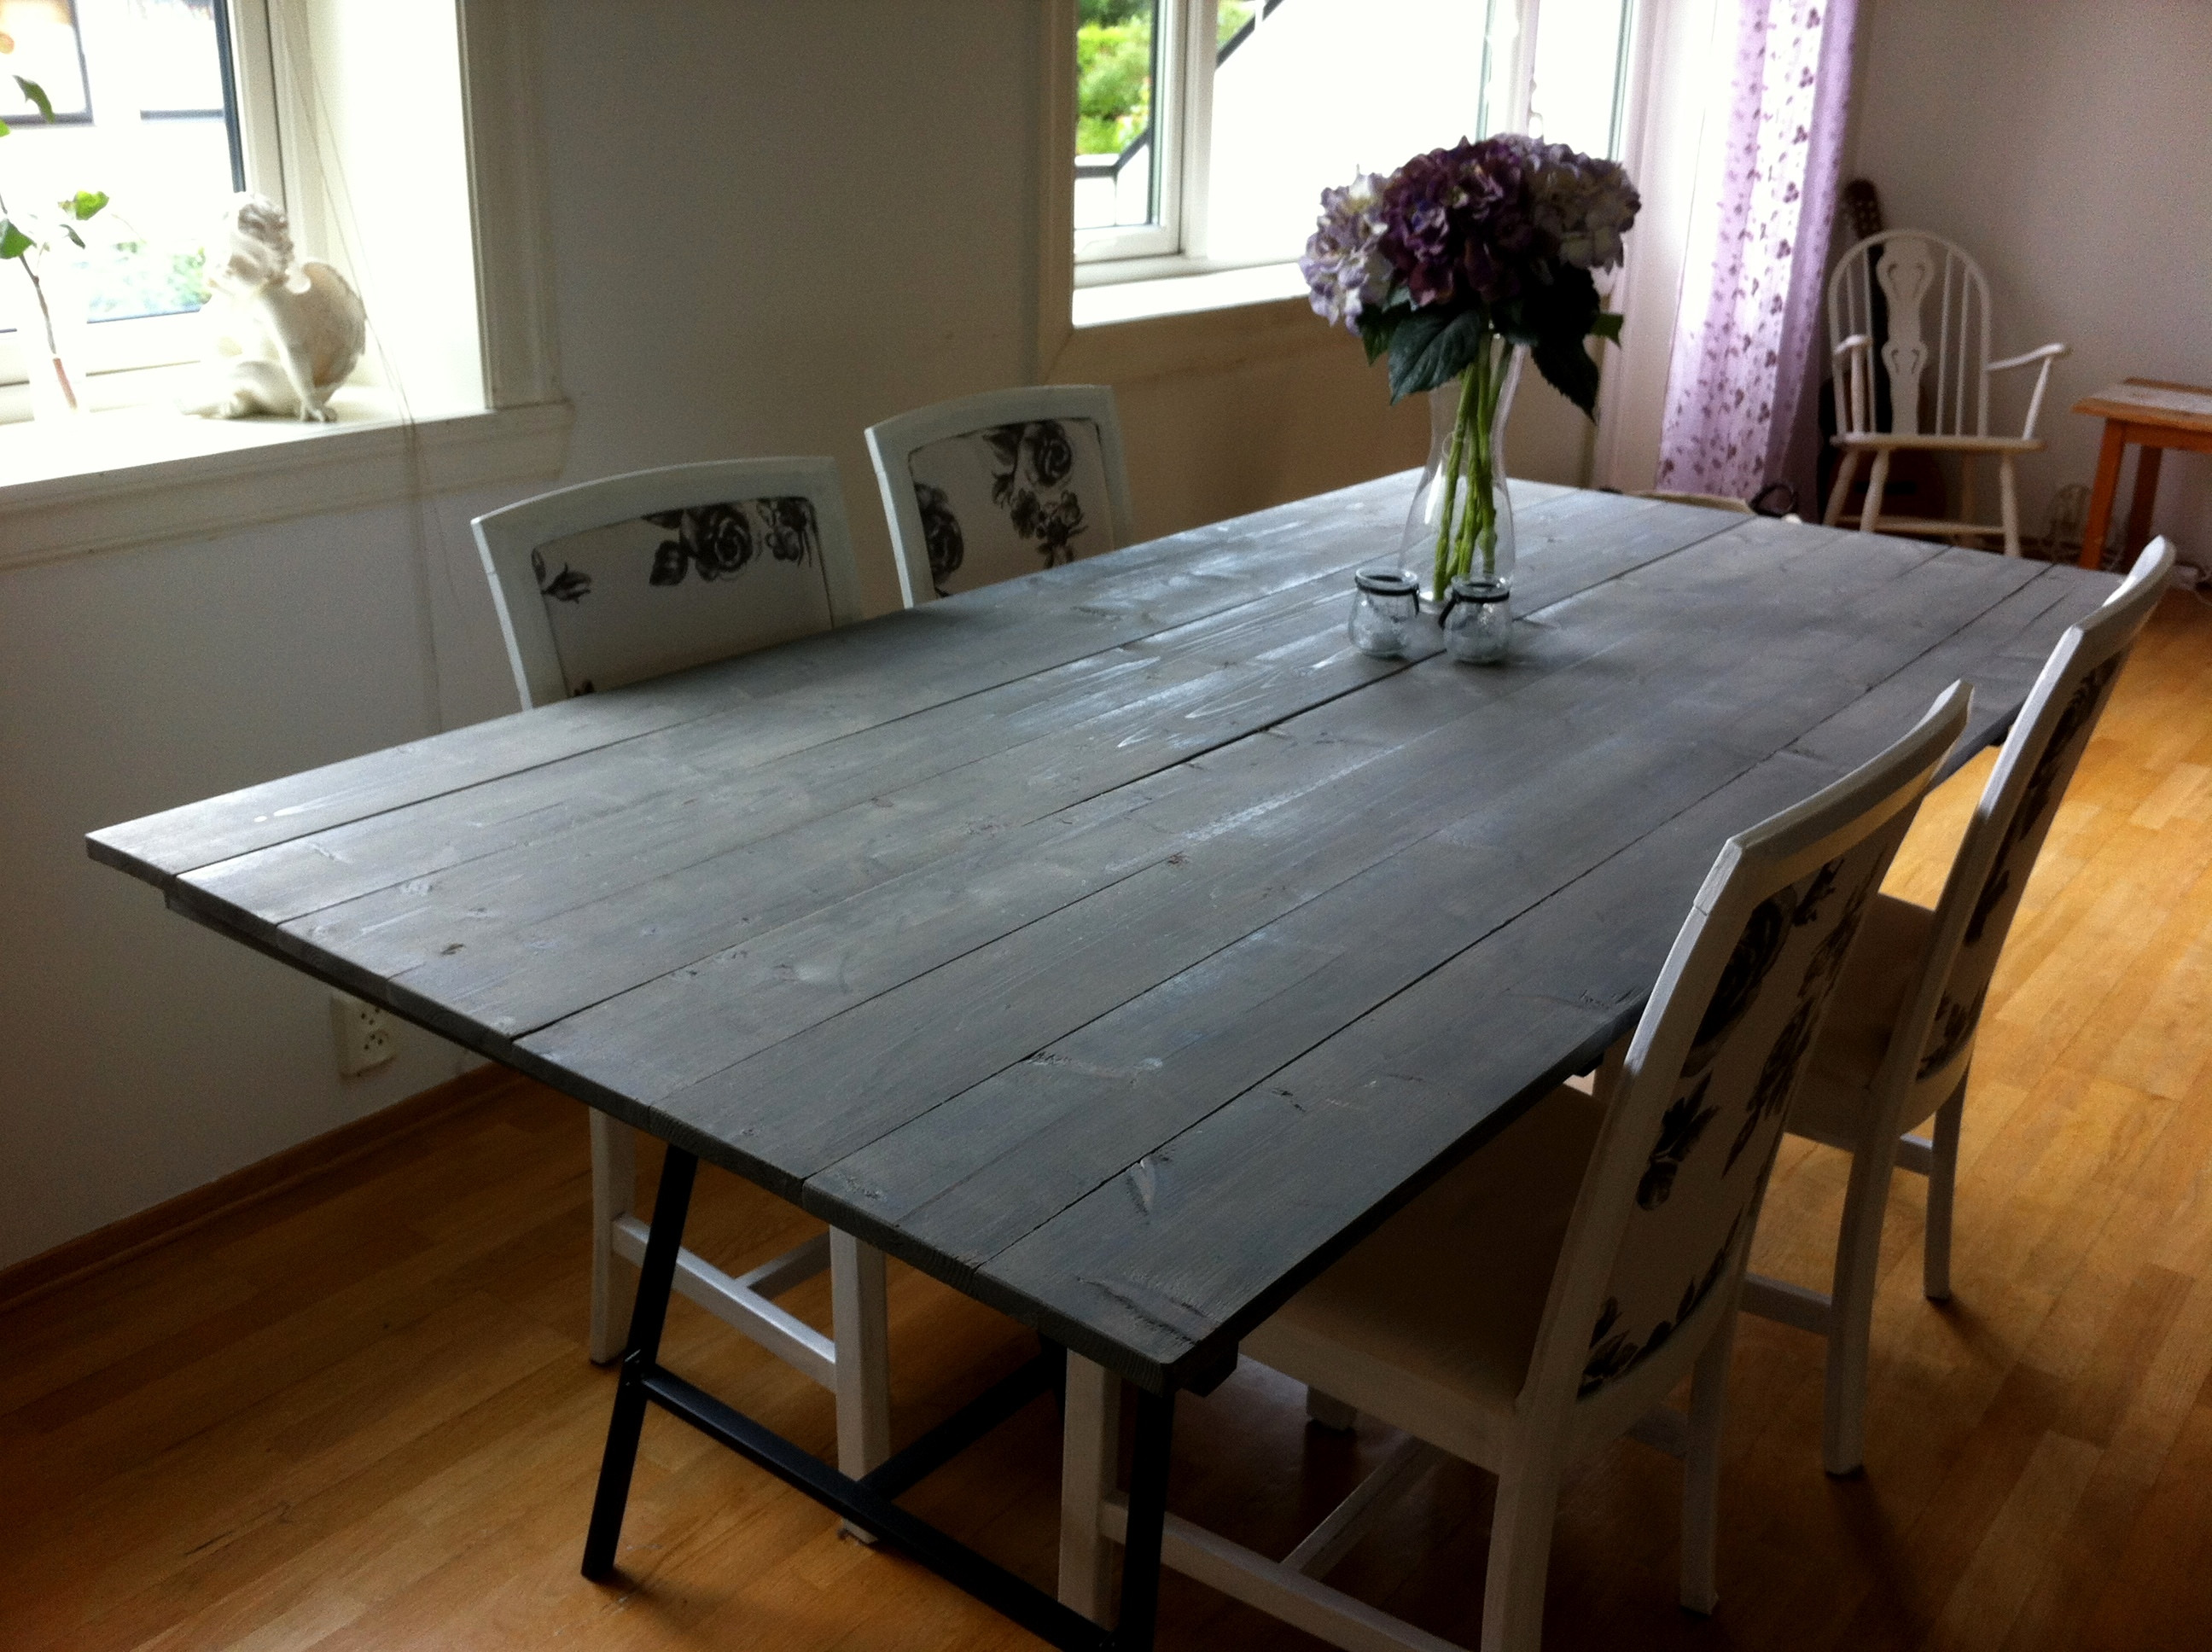 Best ideas about Diy Dining Table . Save or Pin diy dining Table Now.